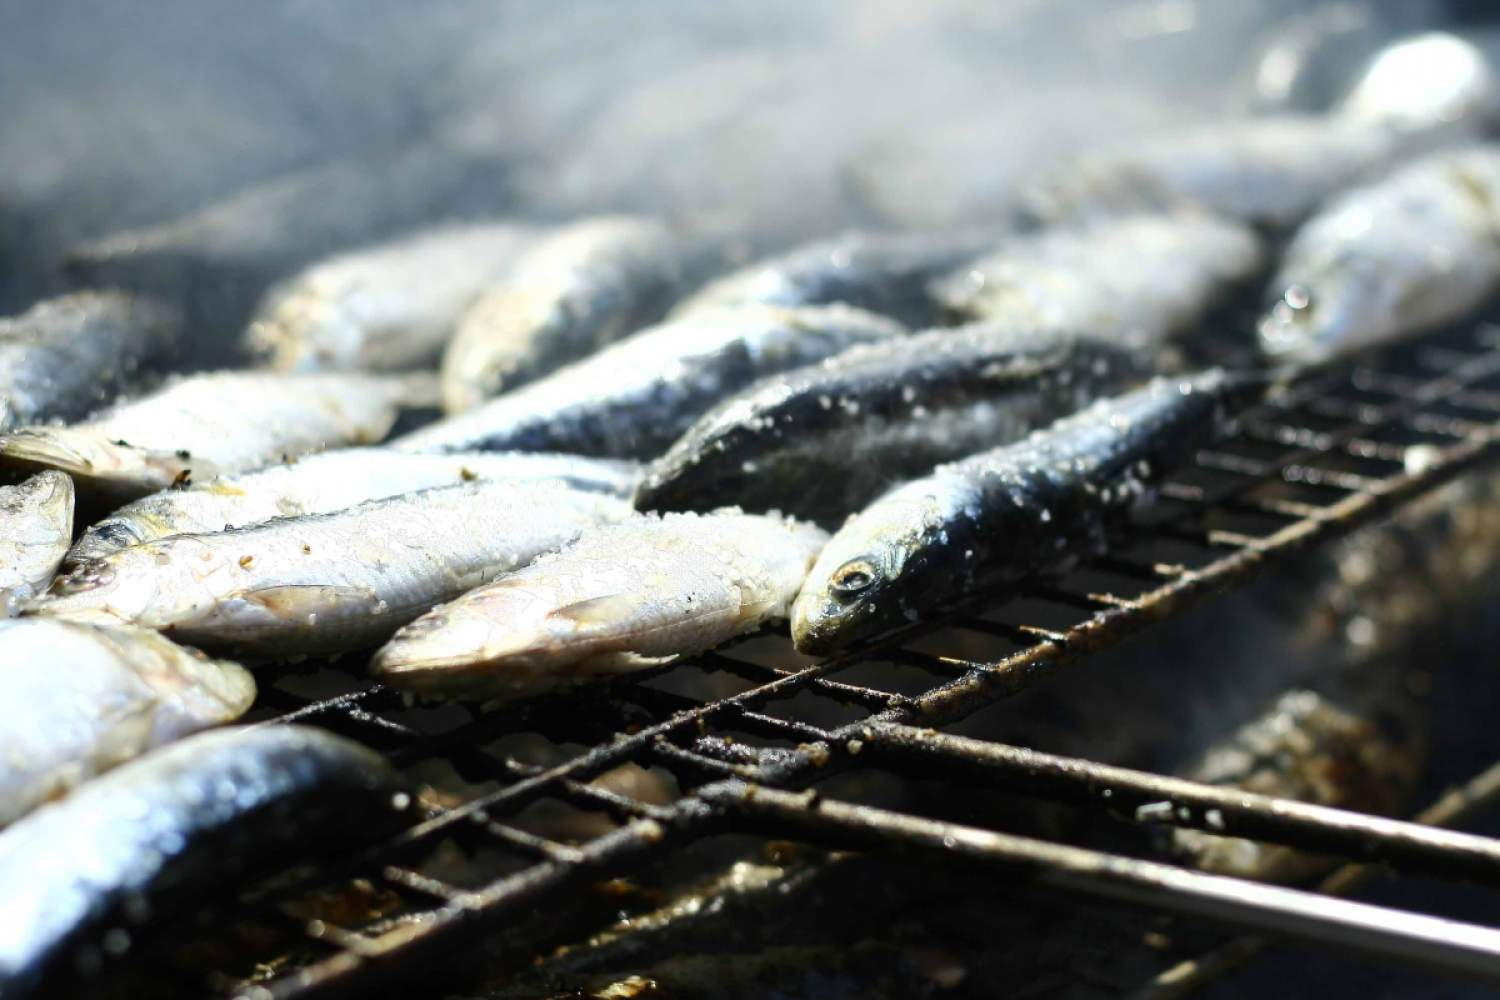 Sardines on the Barbecue in Lisbon, Portugal